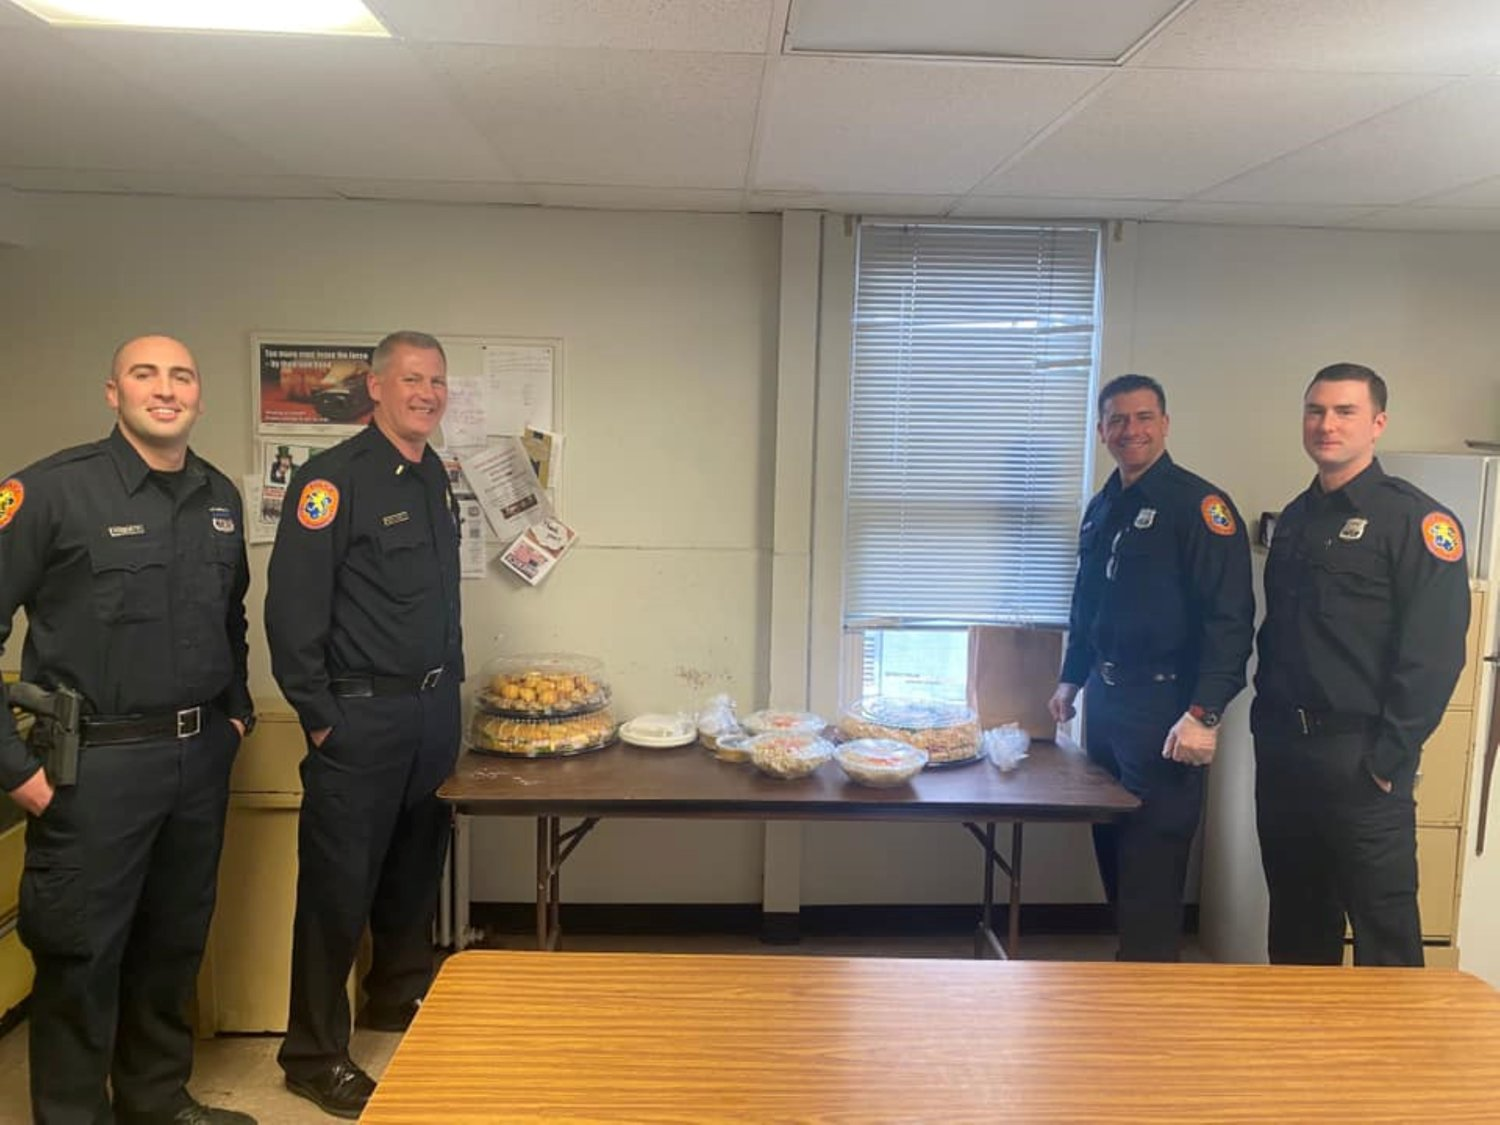 Photos courtesy Helping Our Heroes